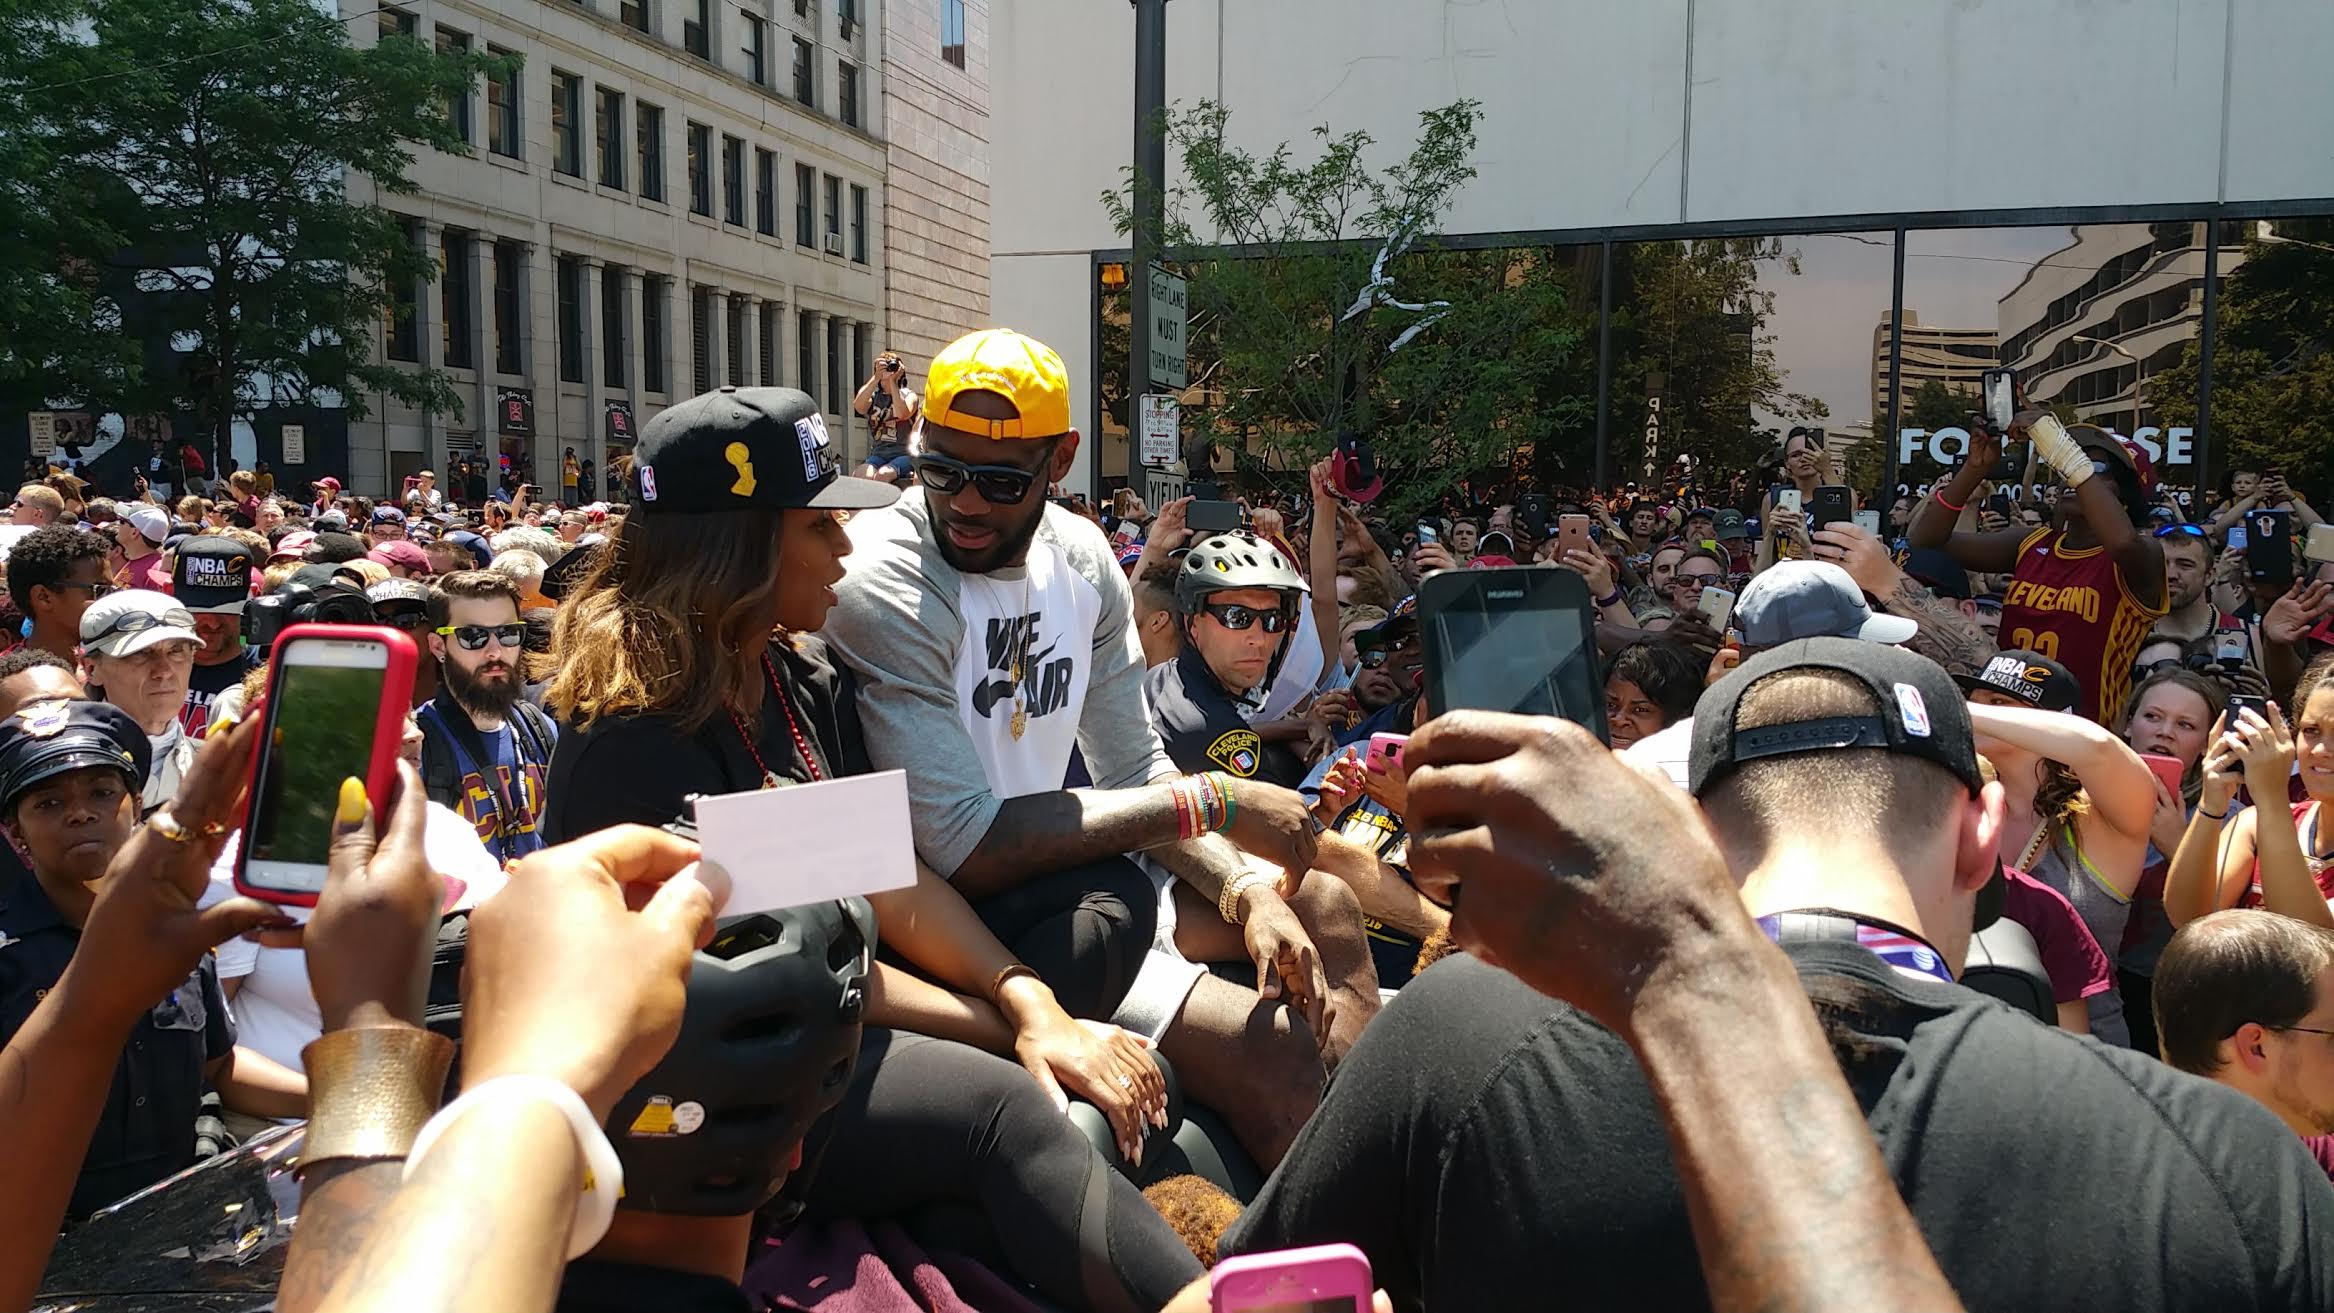 LeBron gets a hero's welcome.